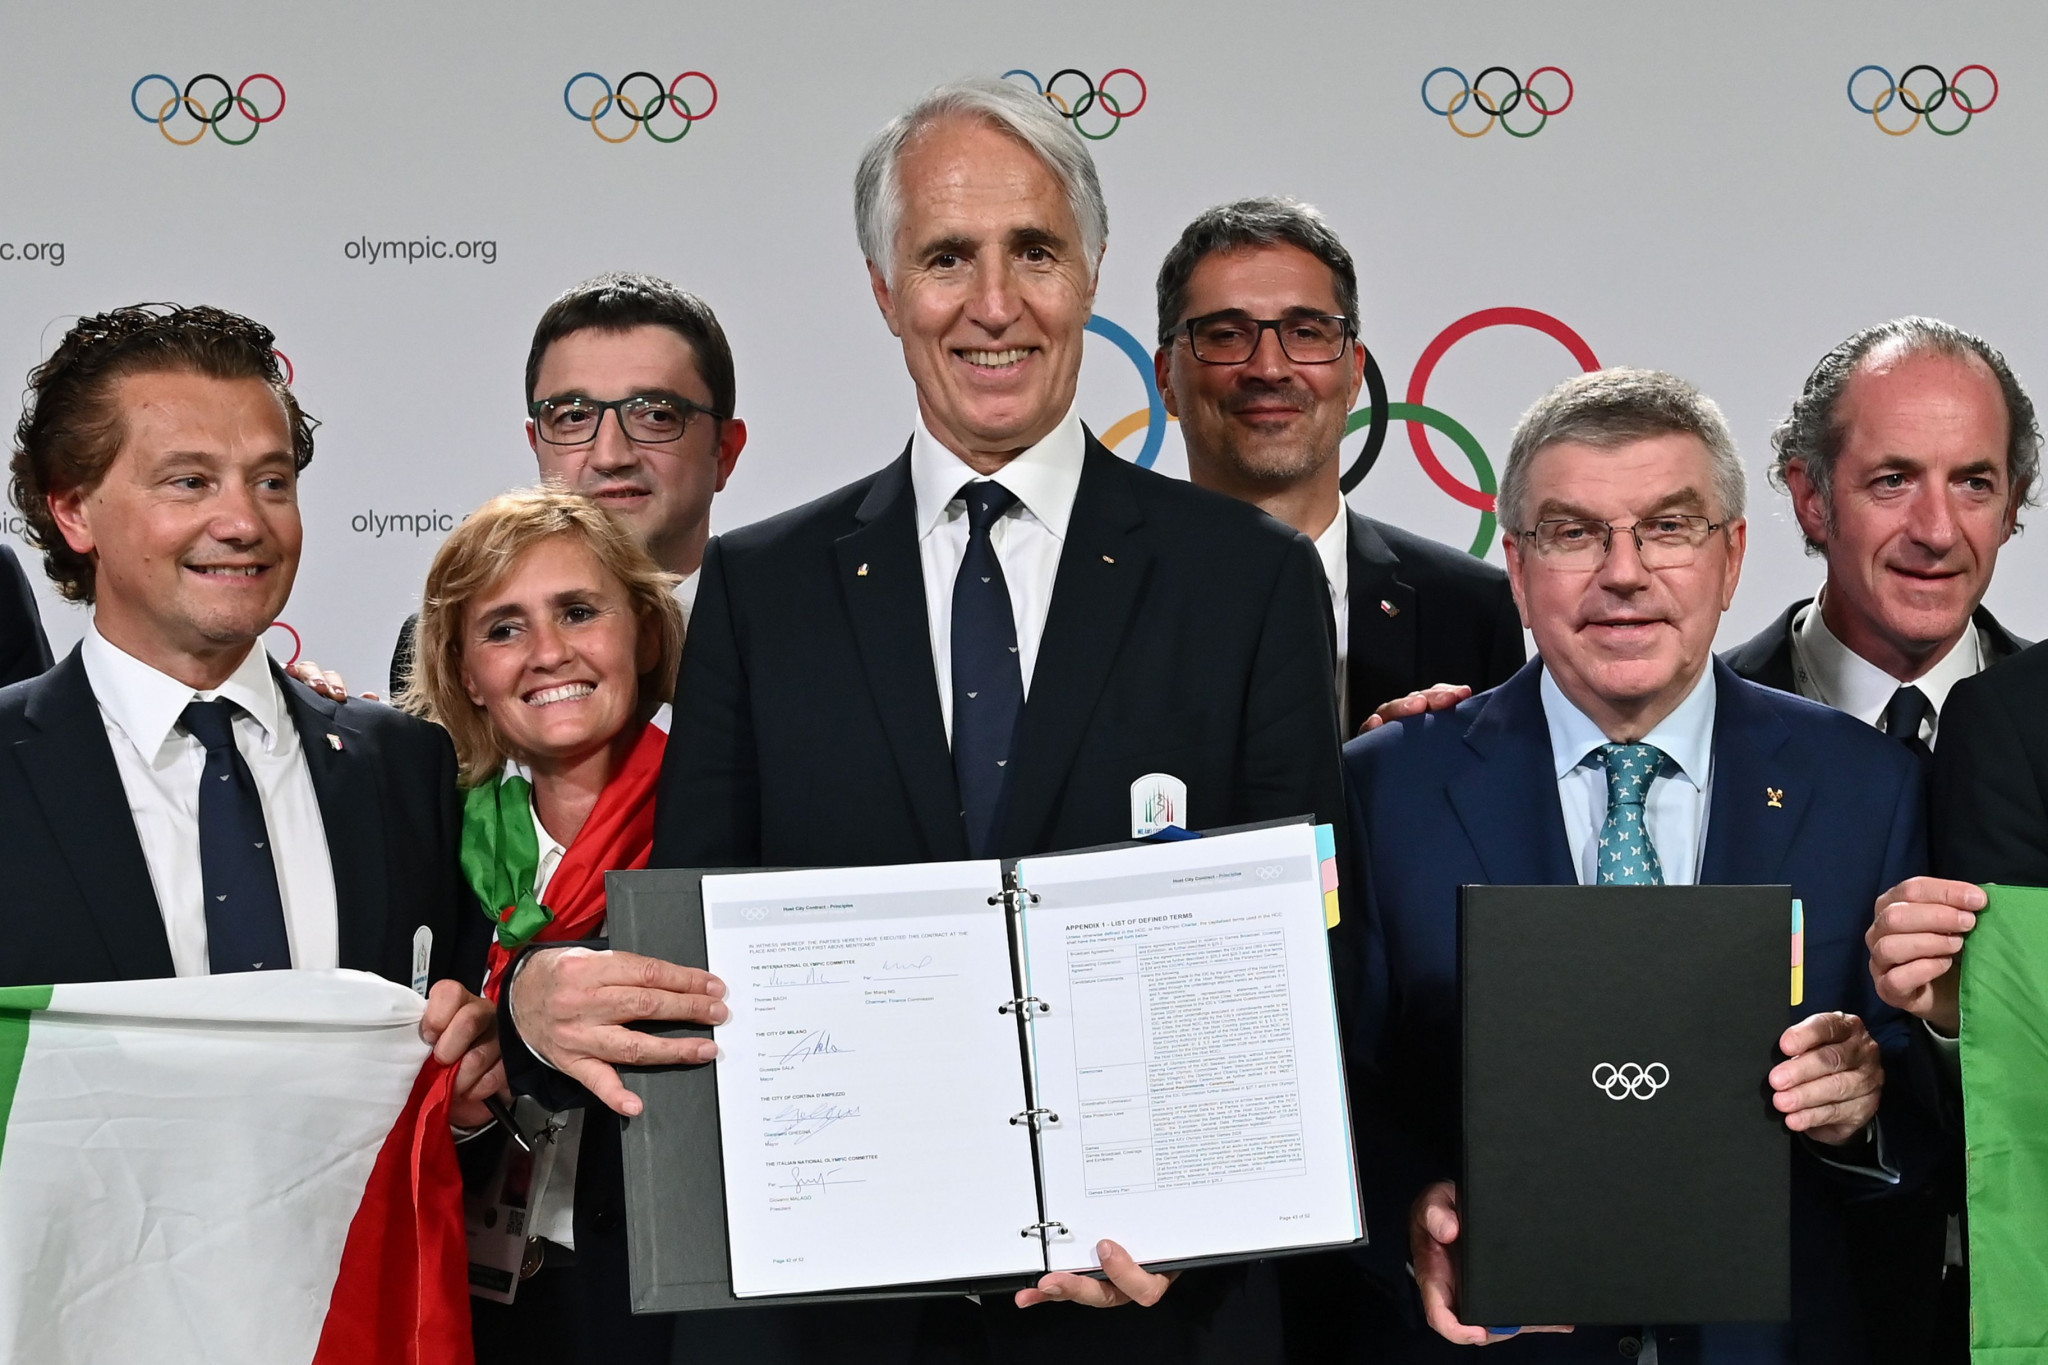 Giovanni Malagò highlighted the crucial role played by politicians last year when the Milan Cortina 2026 bid appeared at risk following the withdrawal of Turin from the project ©Getty Images